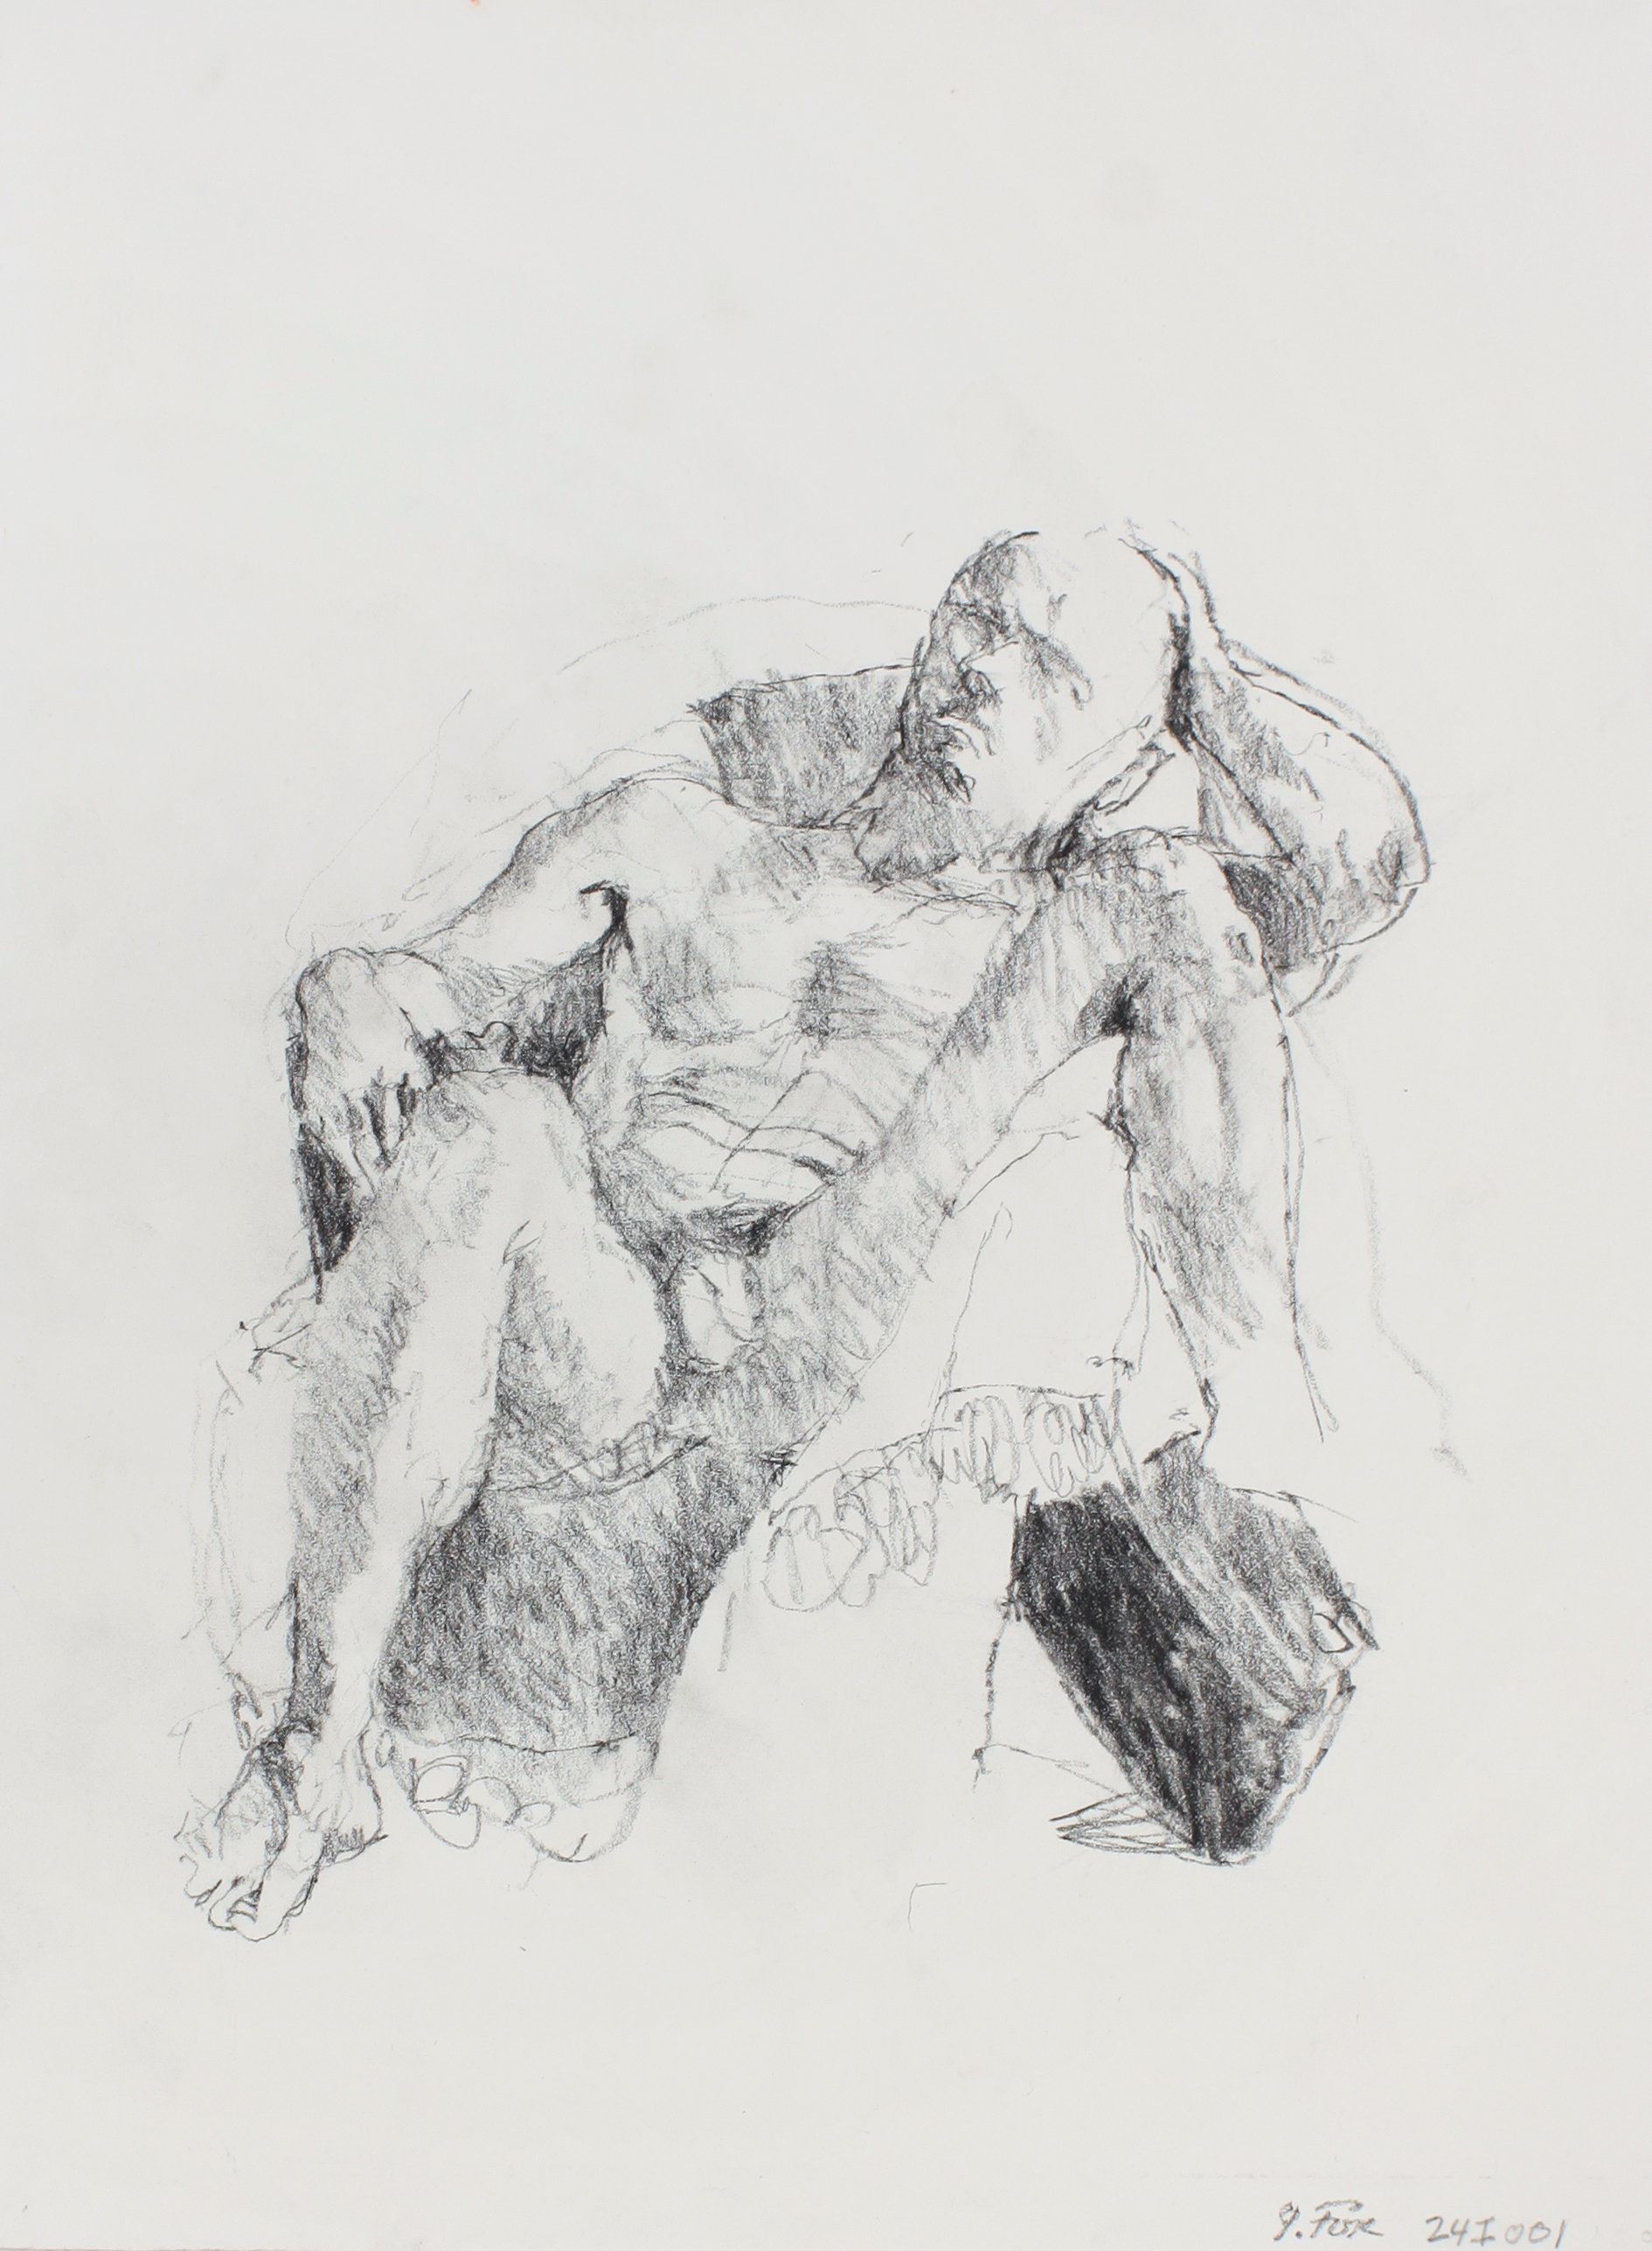 2001_Male_Nude_with_Leg_Over_Chair_conte_on_paper_15x11in_WPF522.jpg